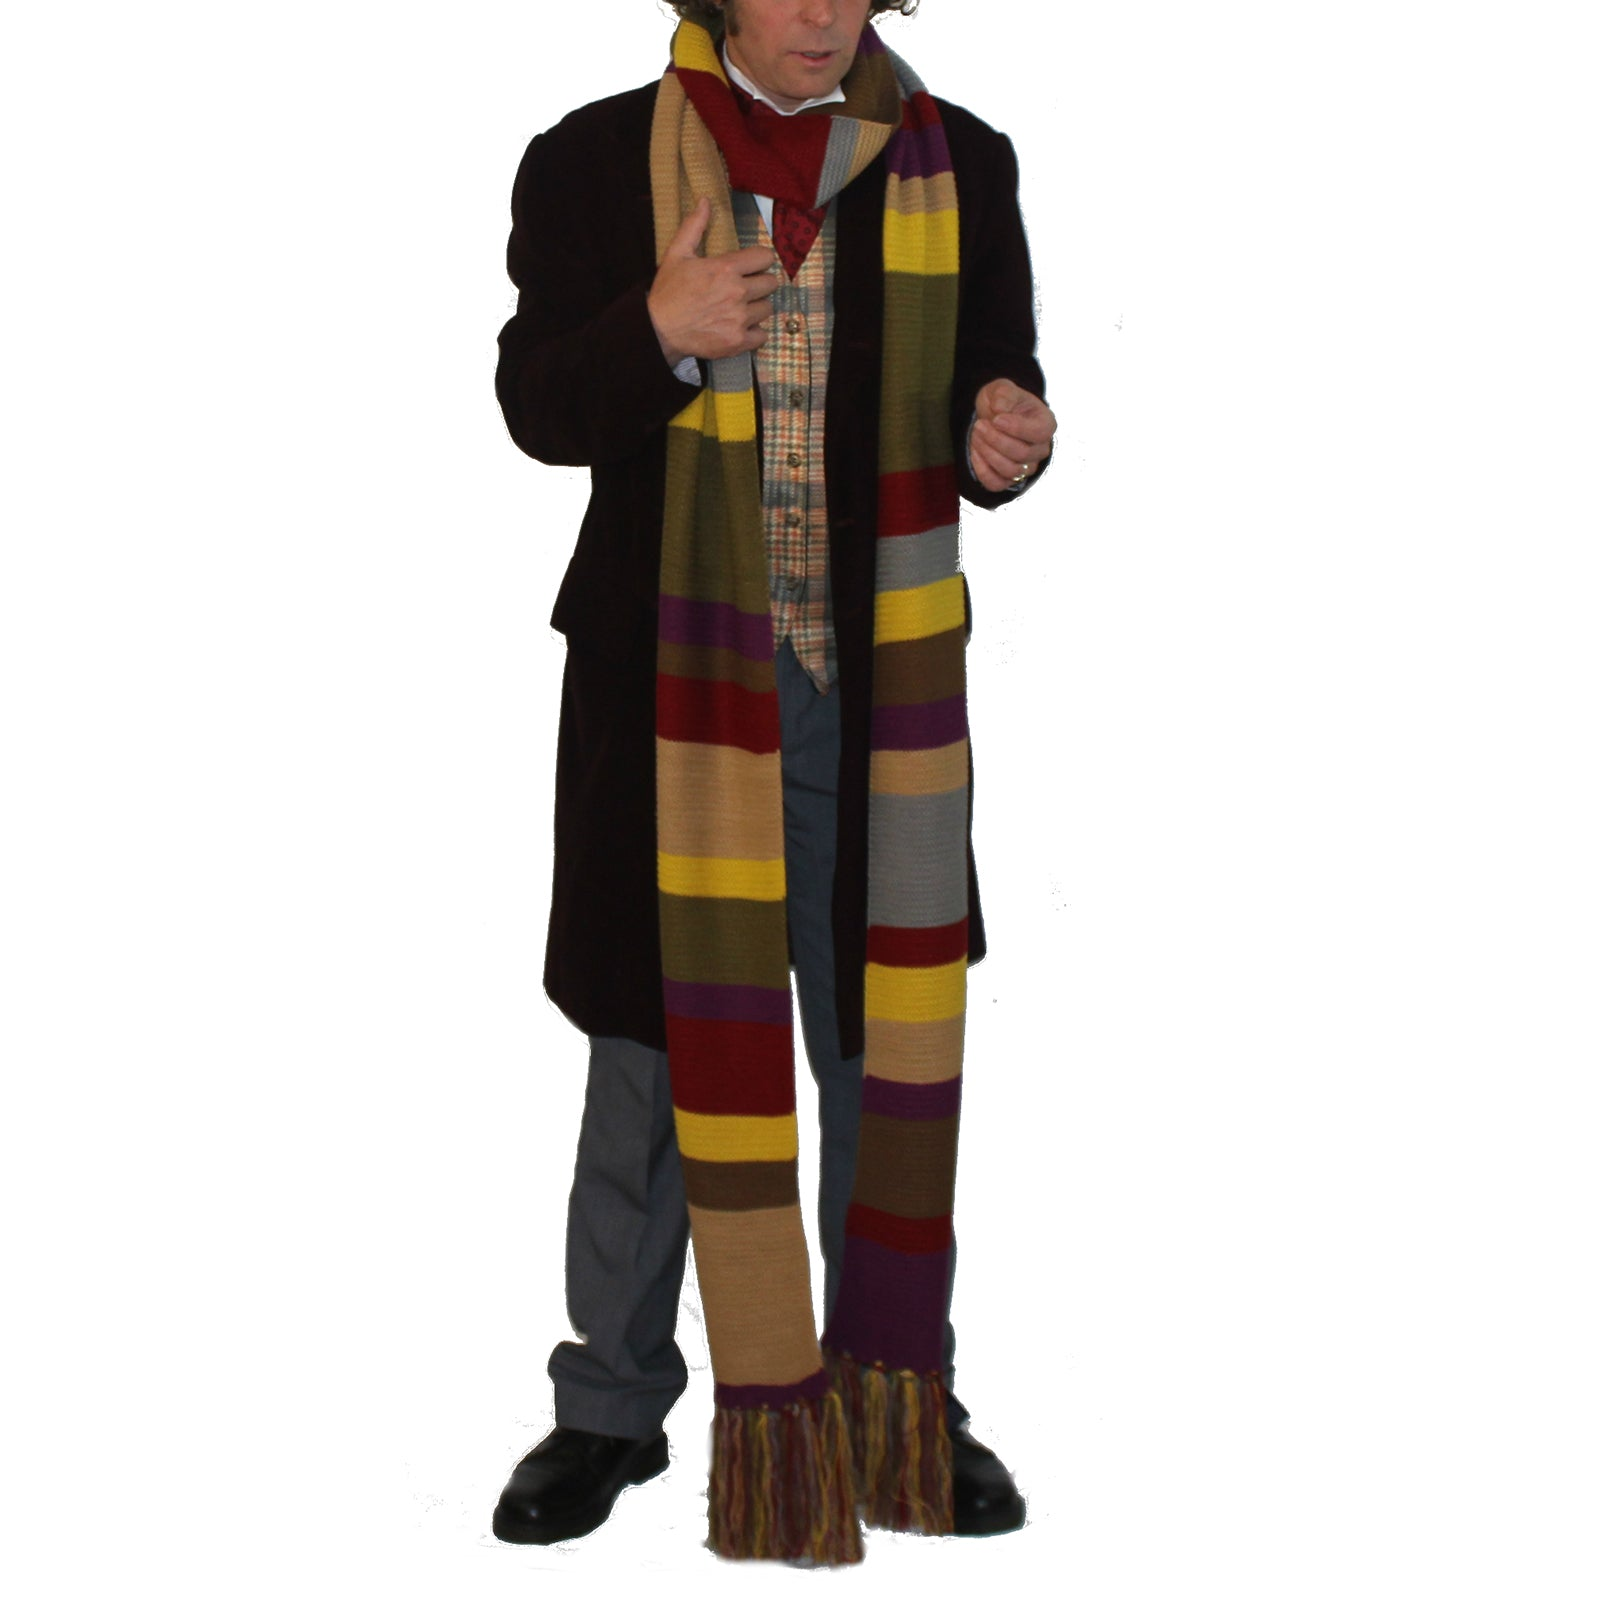 f8064d416d1 Doctor Who Scarf - Buy Official BBC Season 12 Tom Baker 4th Dr Scarf ...